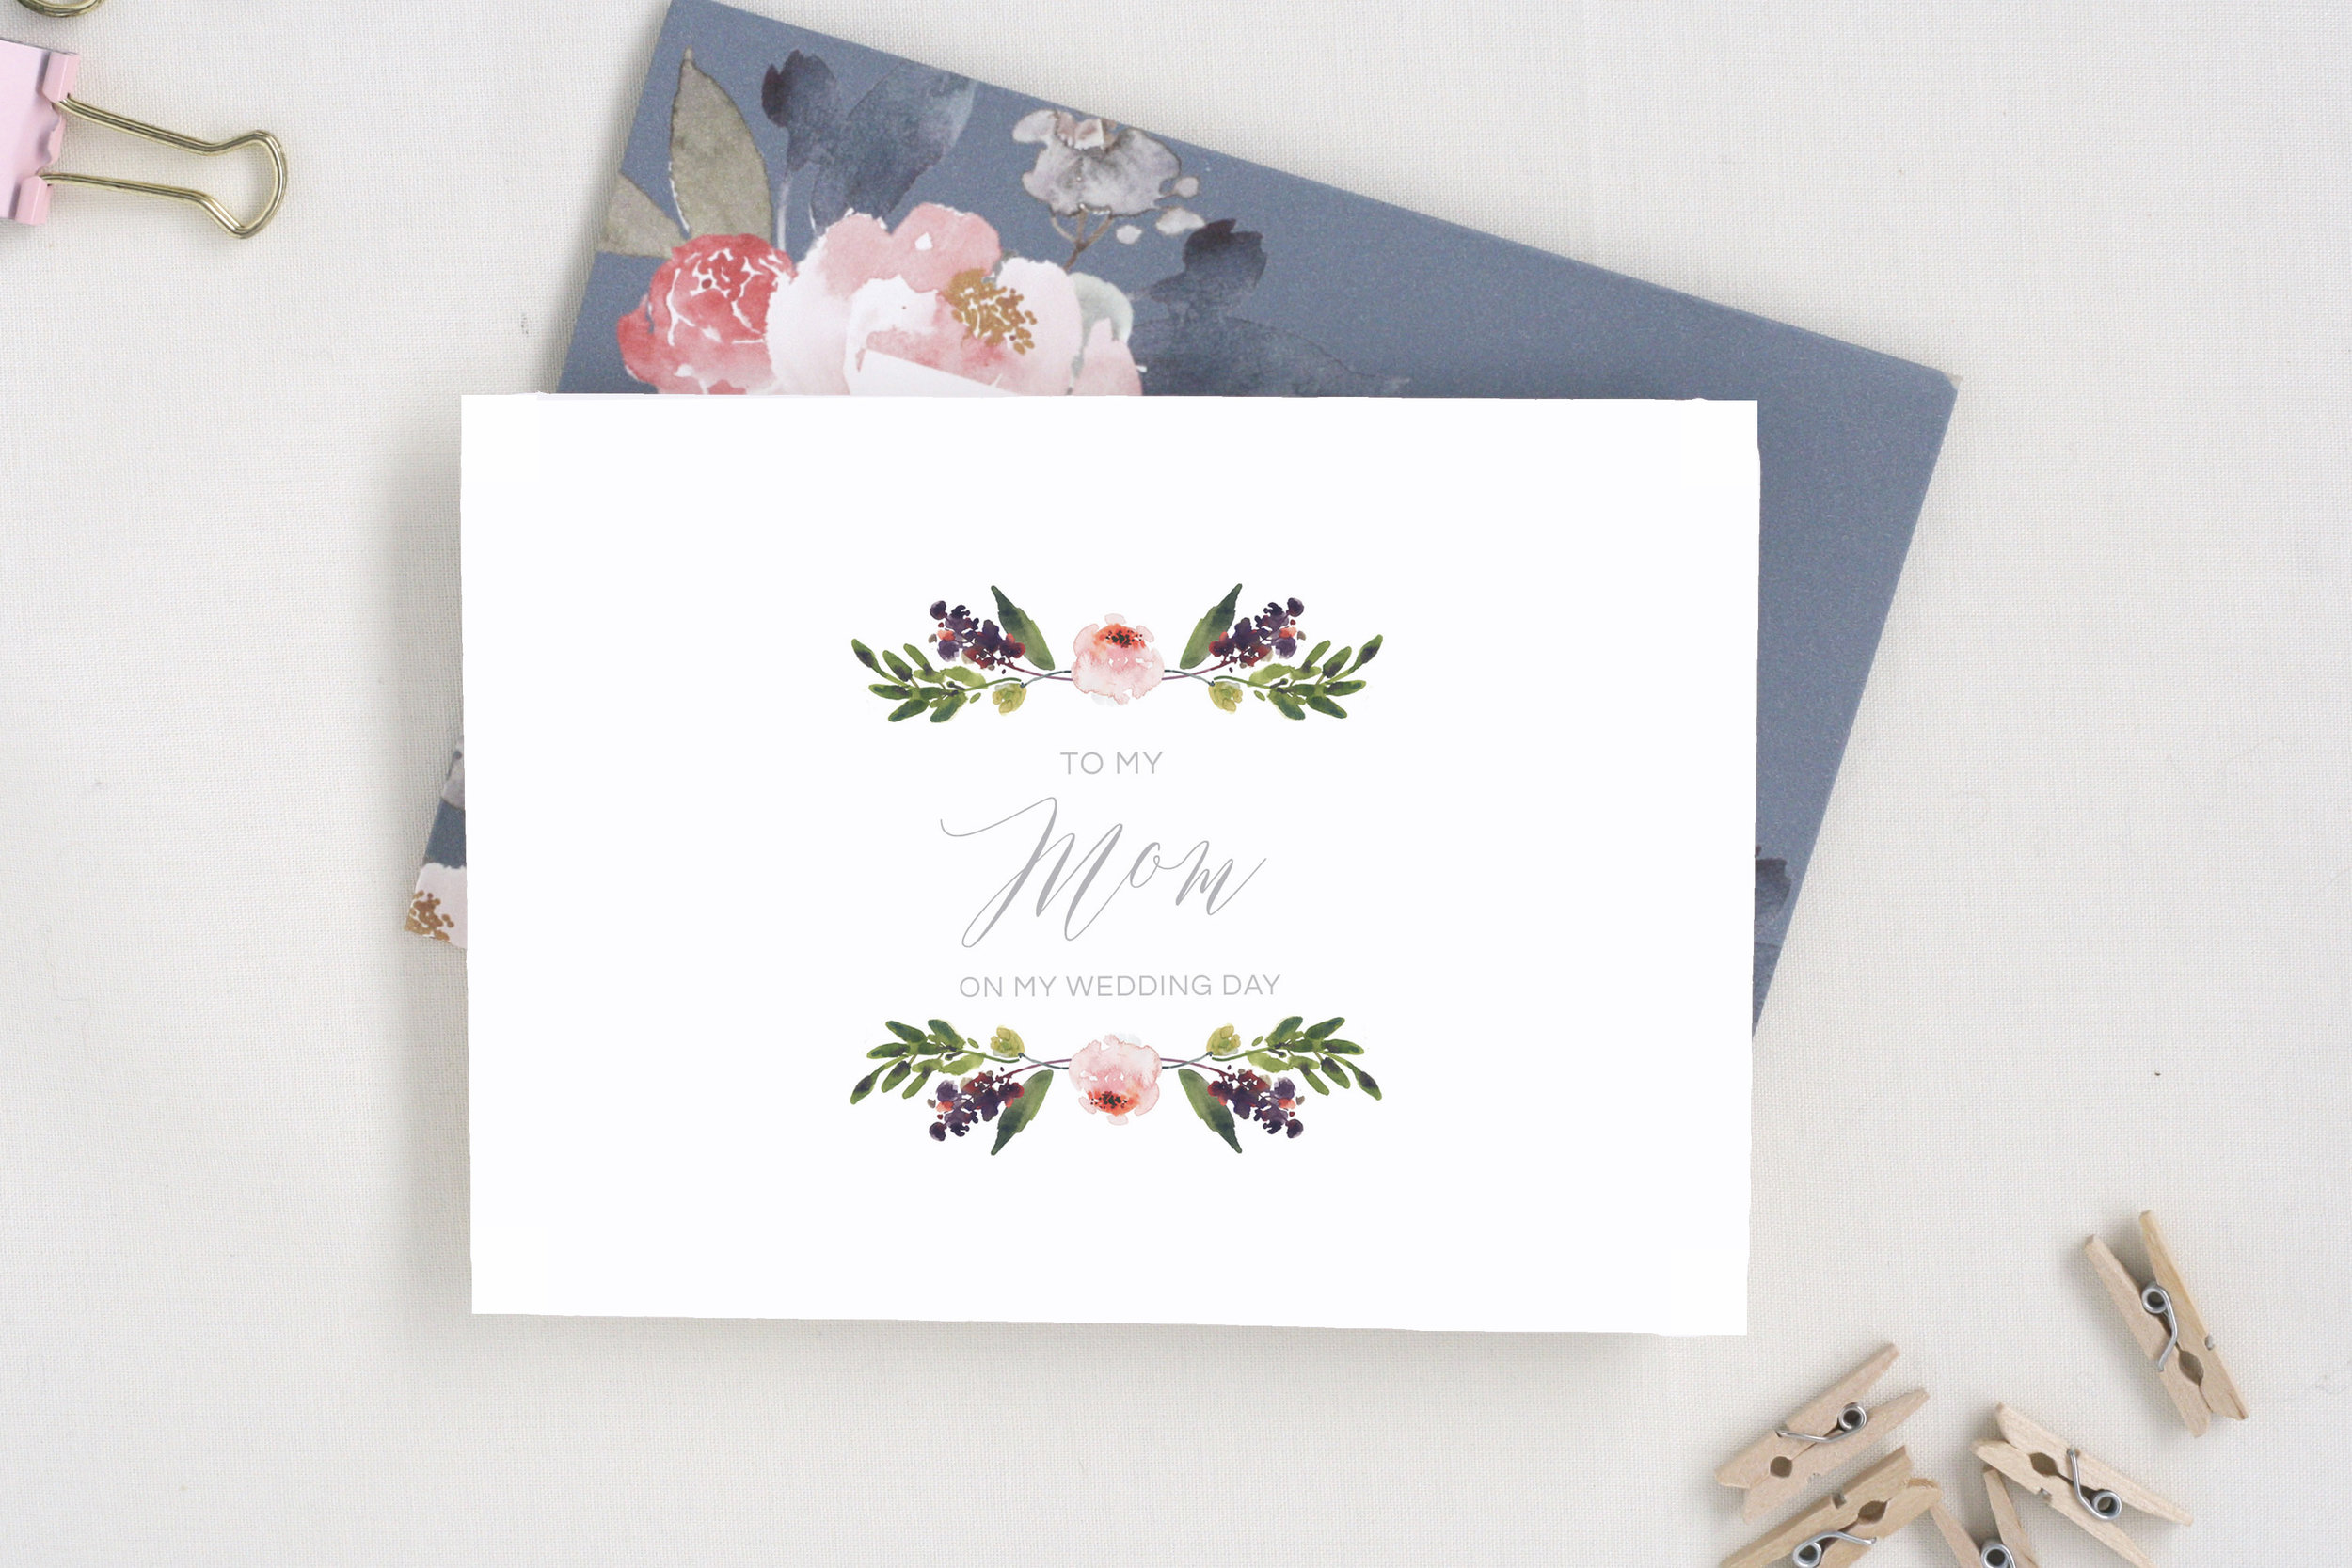 5 Gifts To Give To Your Parents On Your Wedding Day The Tabitha Shop